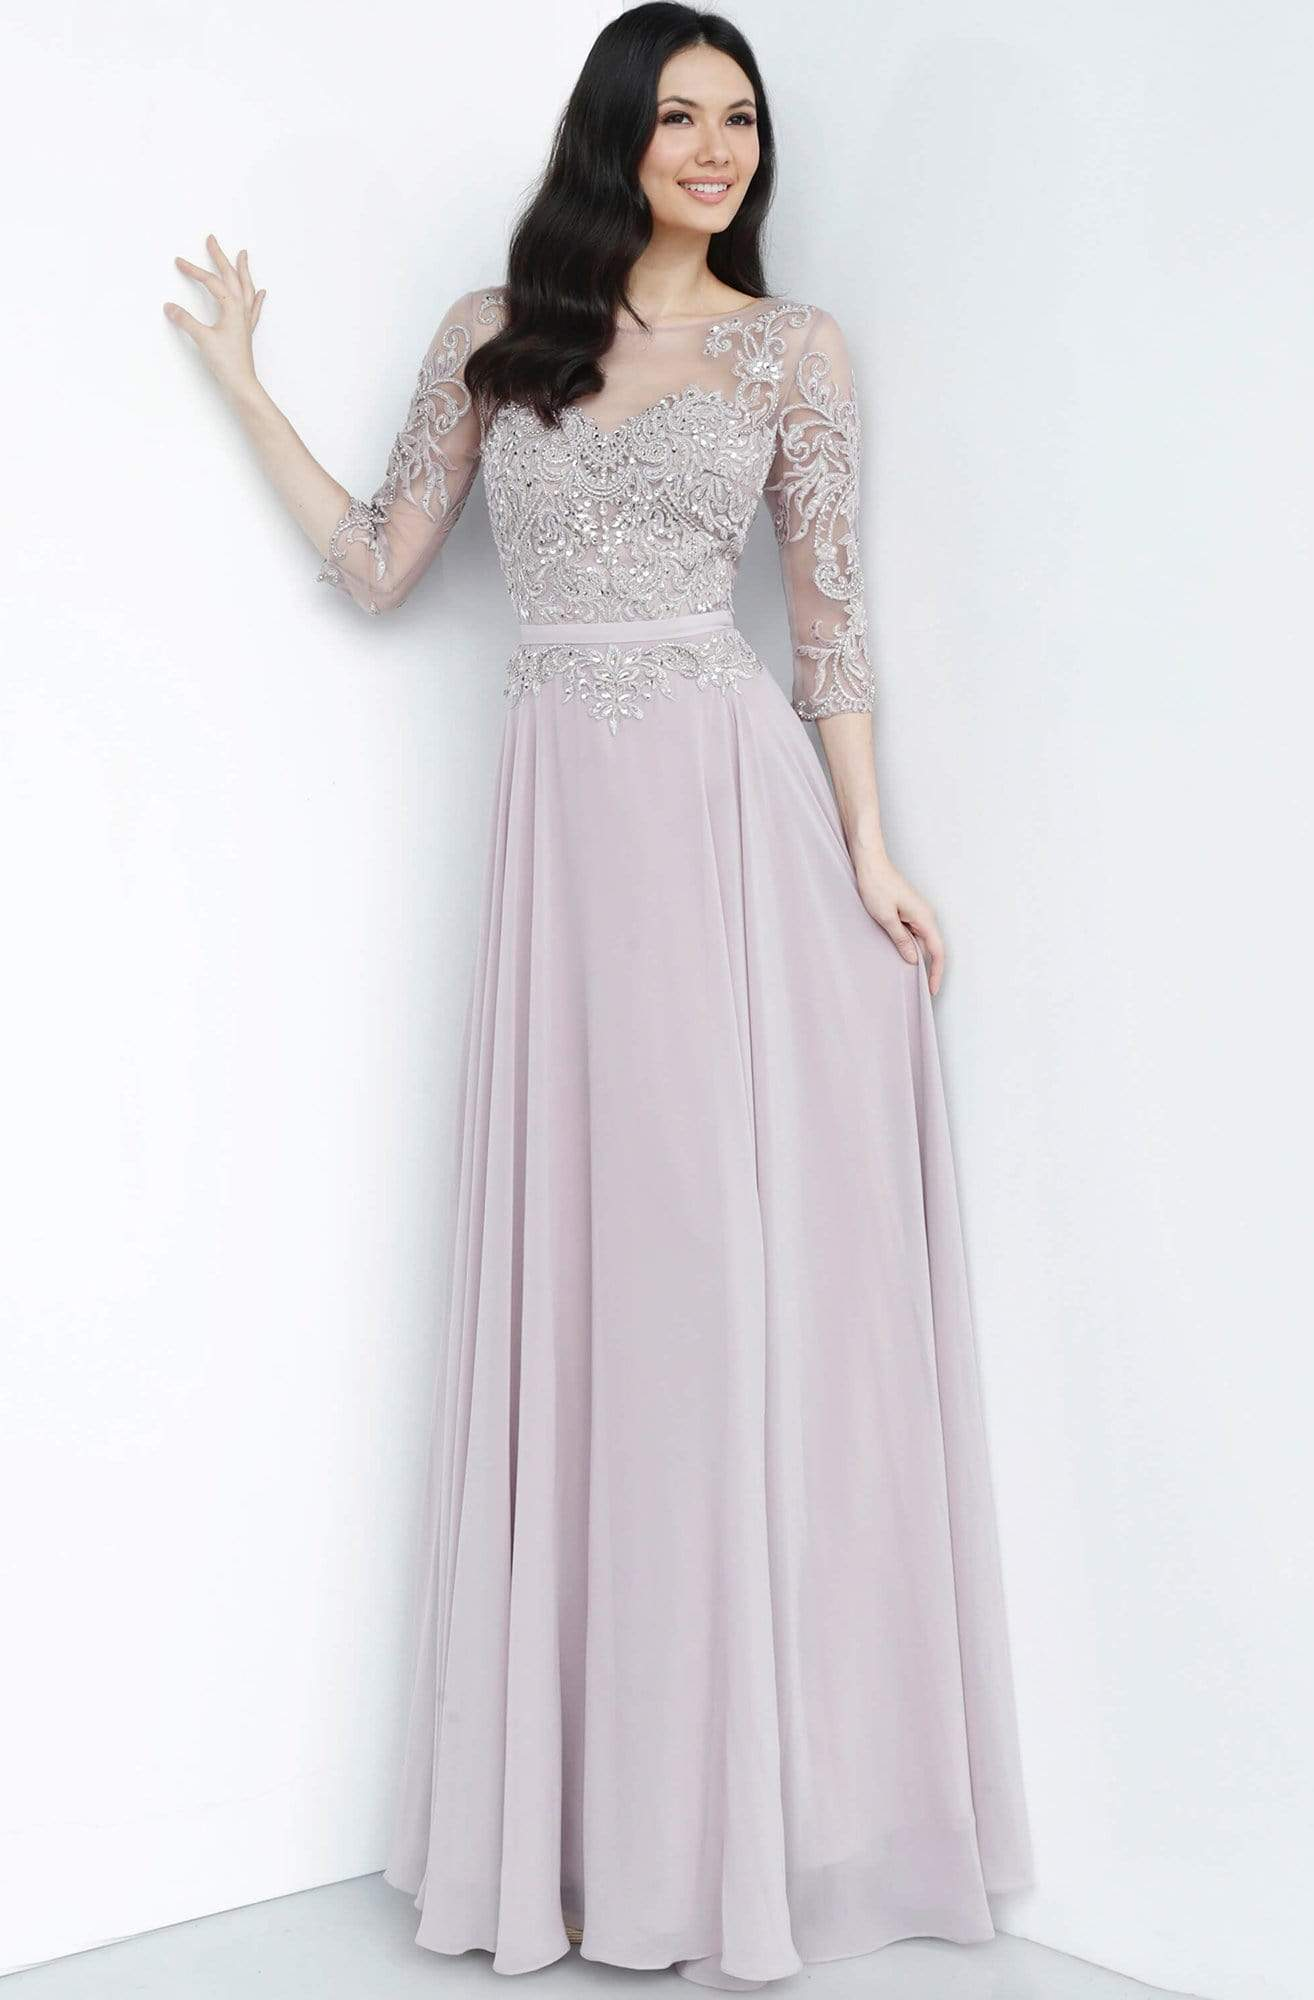 Jovani - JVN2167 Embroidered Illusion Bateau A-Line Dress Evening Dresses 00 / Mauve